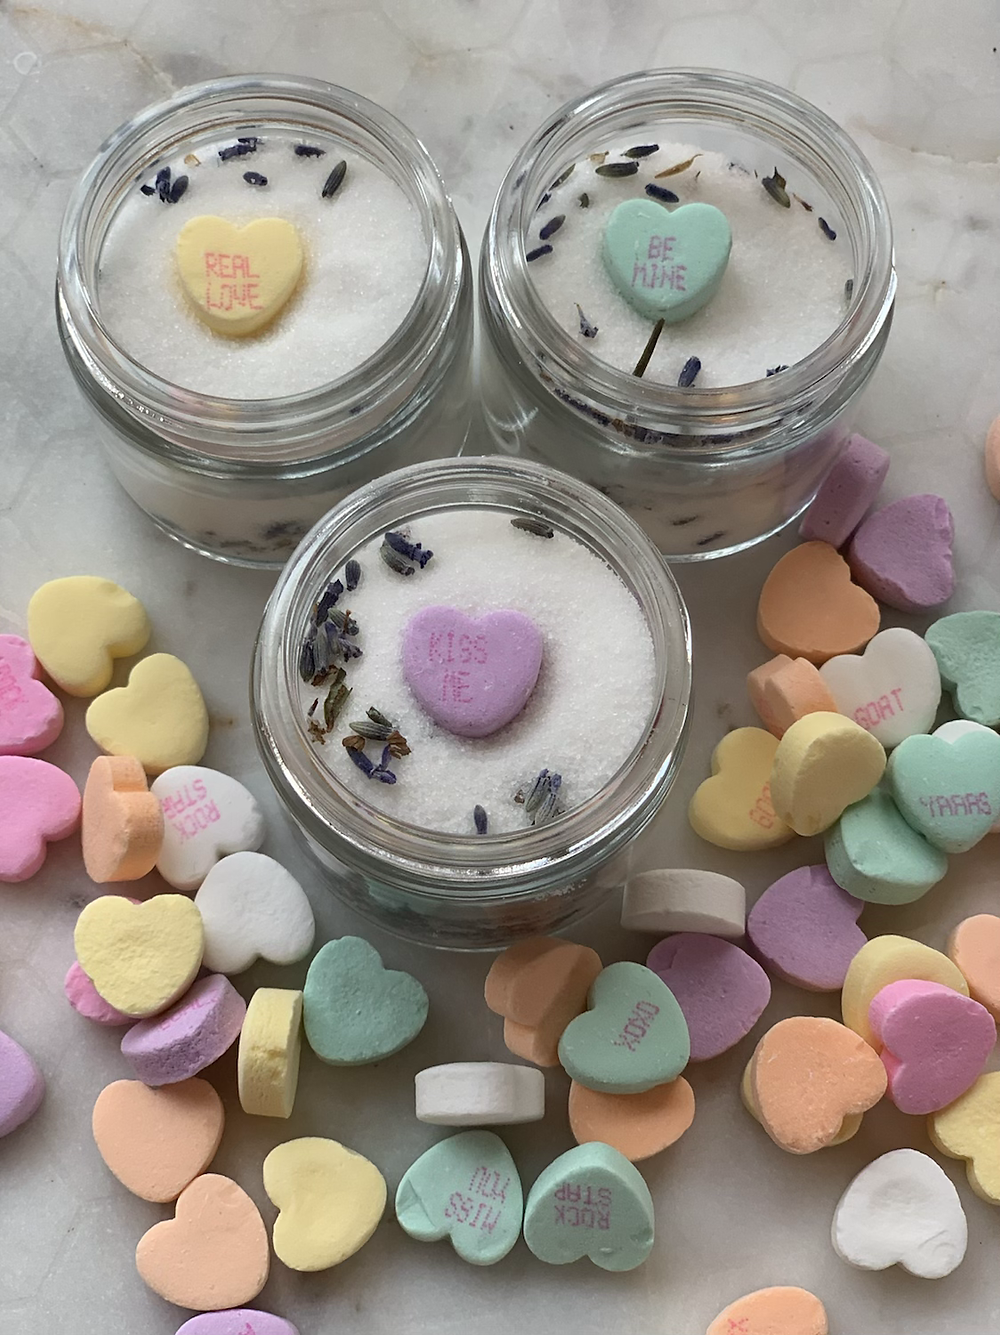 homemde sugar scrub for clean healthy skin with dried lavender buds and valentine candies